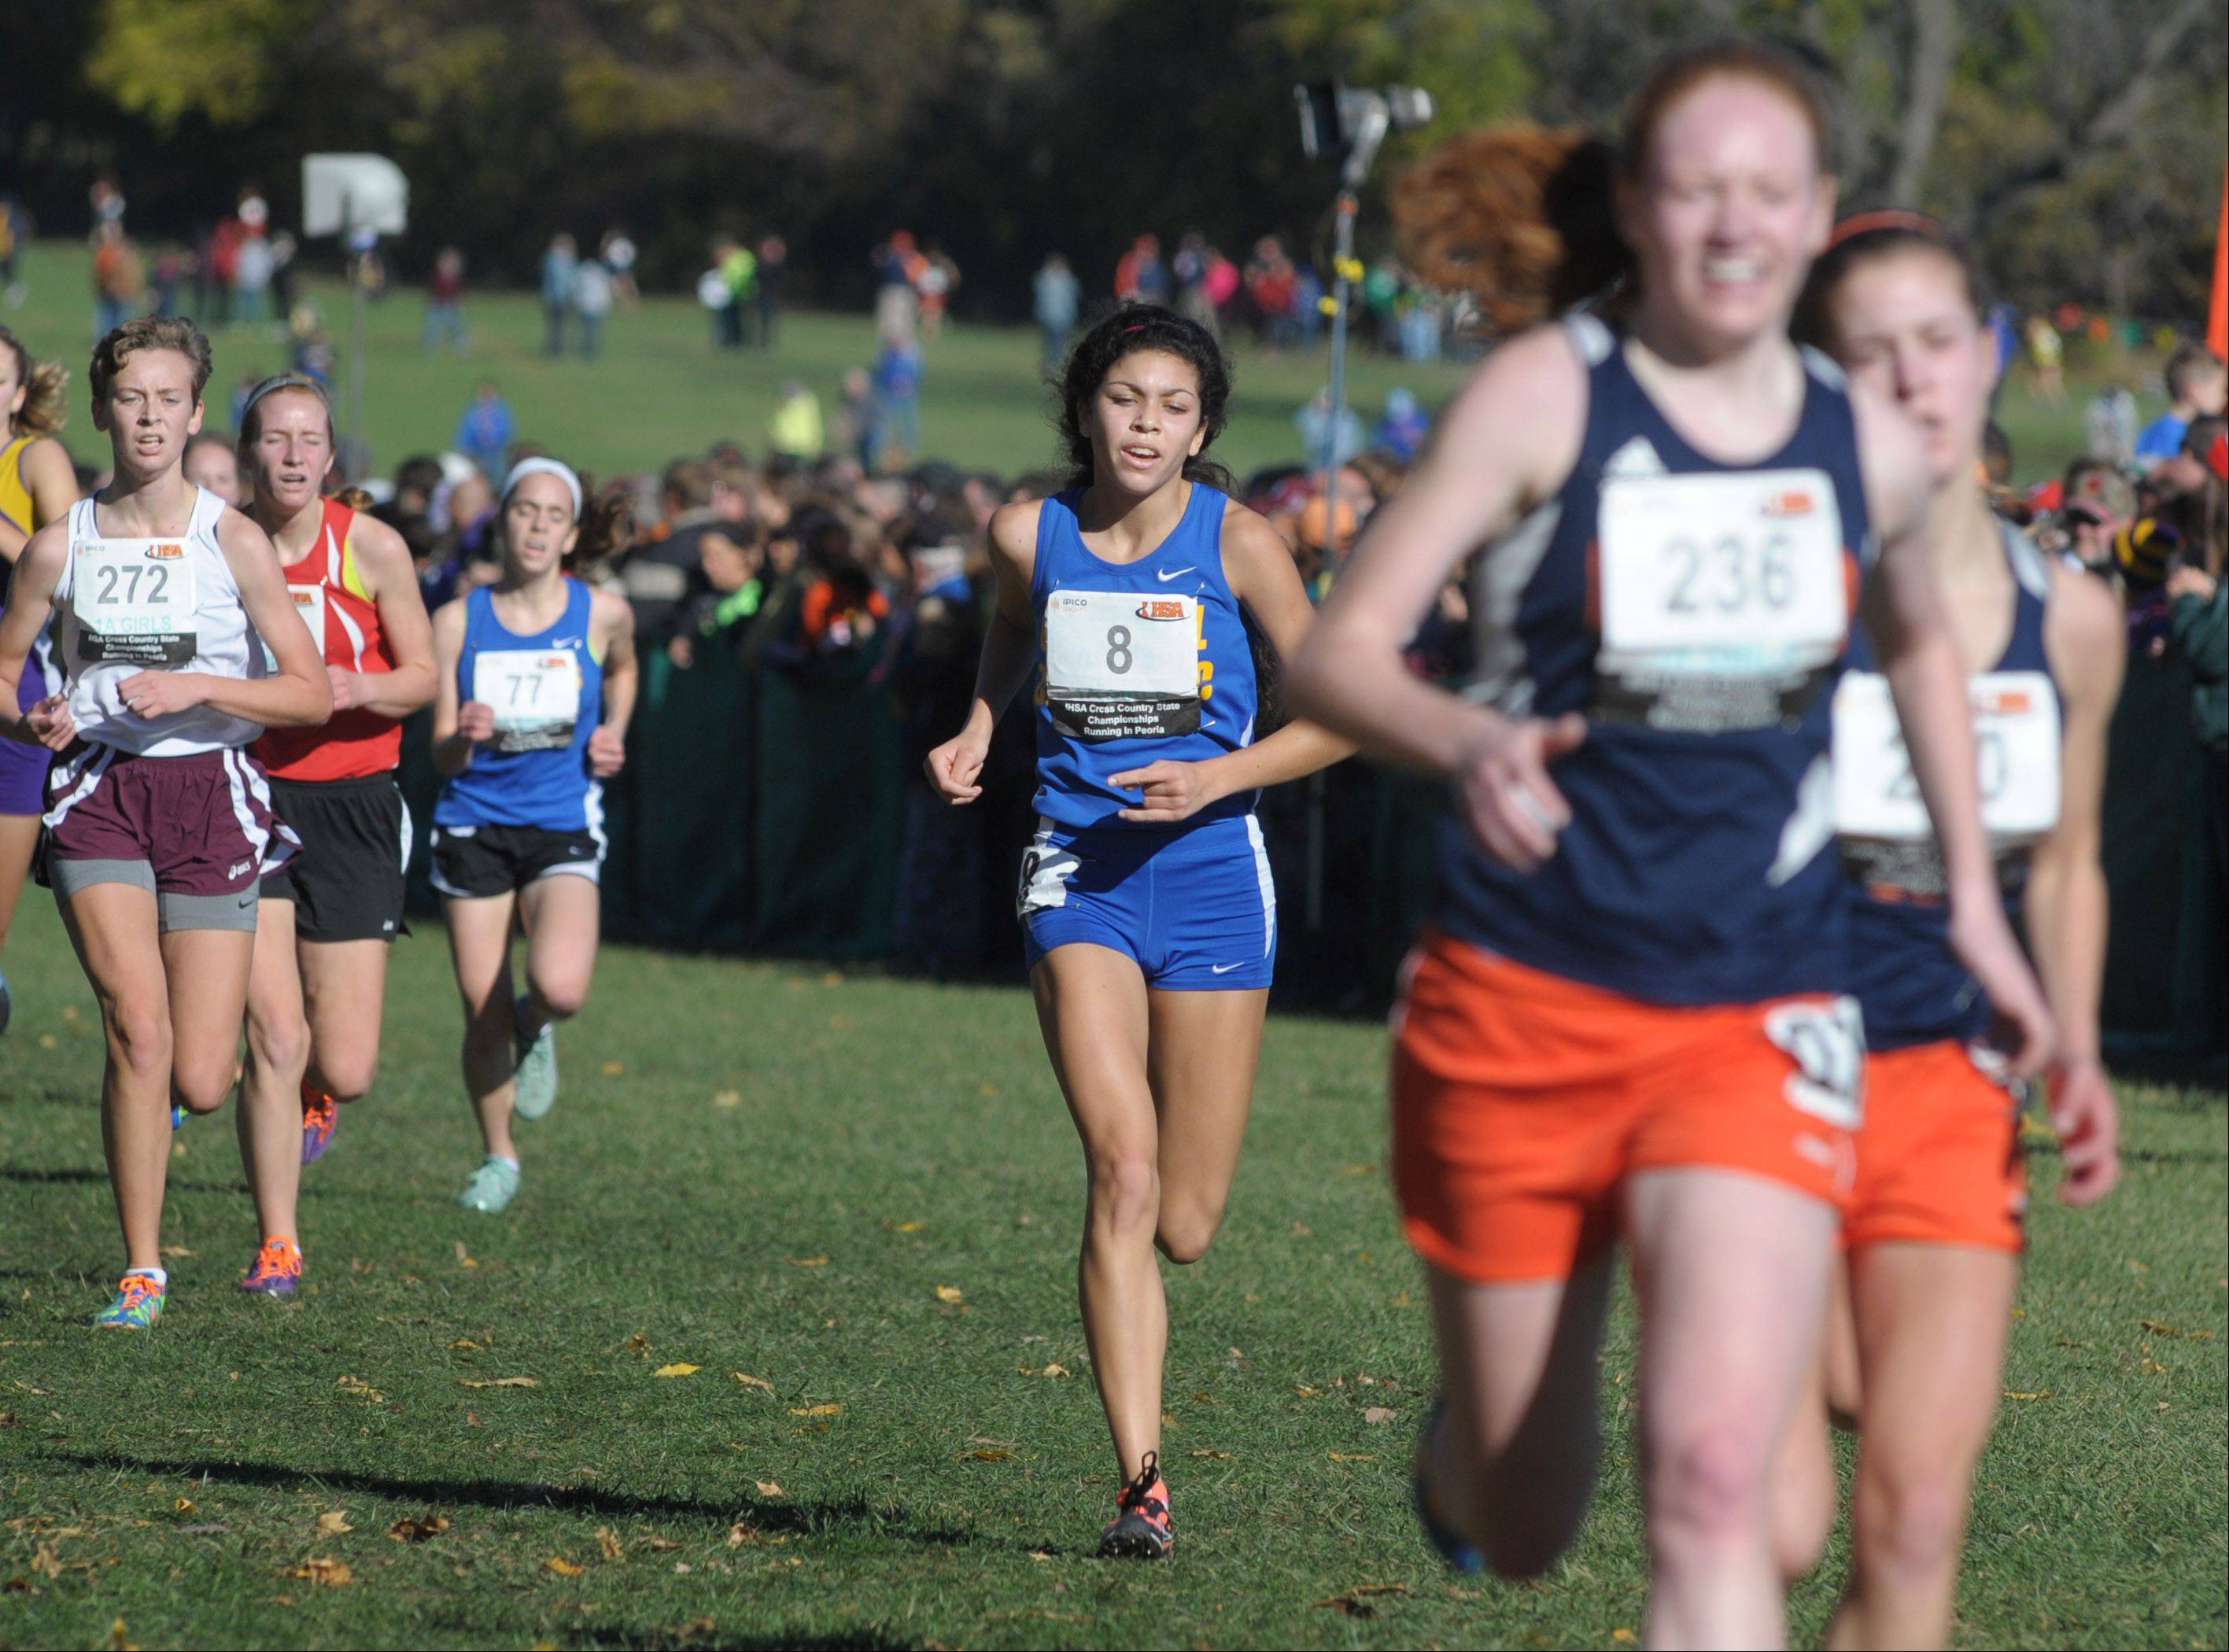 Aurora Central Catholic's Karina Liz nears the finish line to take 59th place in the Class 1A IHSA cross country state final at Detweiller Park in Peoria on Saturday, November 9.